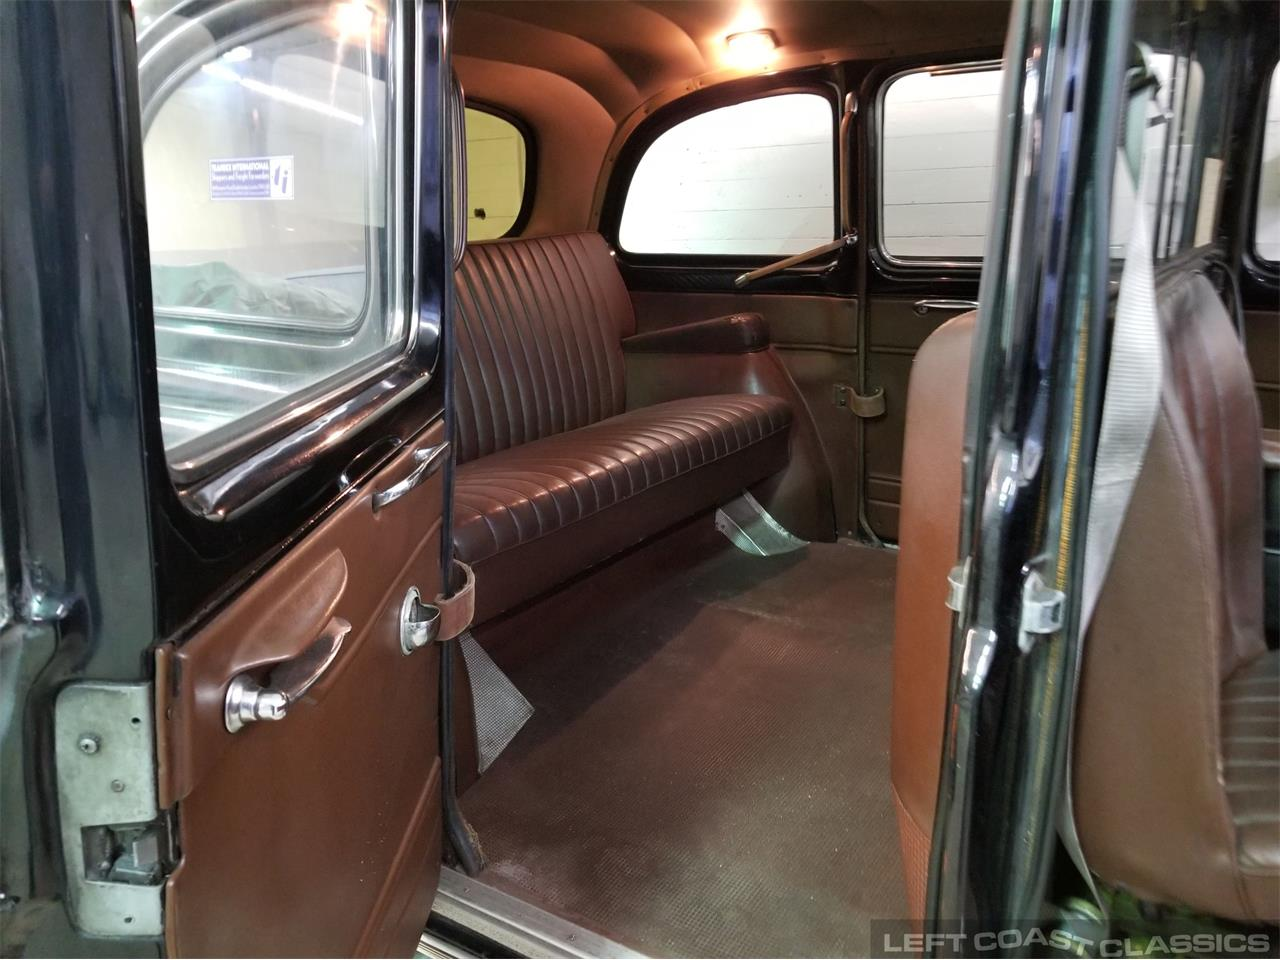 Large Picture of 1967 Austin FX4 Taxi Cab - $12,500.00 Offered by Left Coast Classics - PKBX